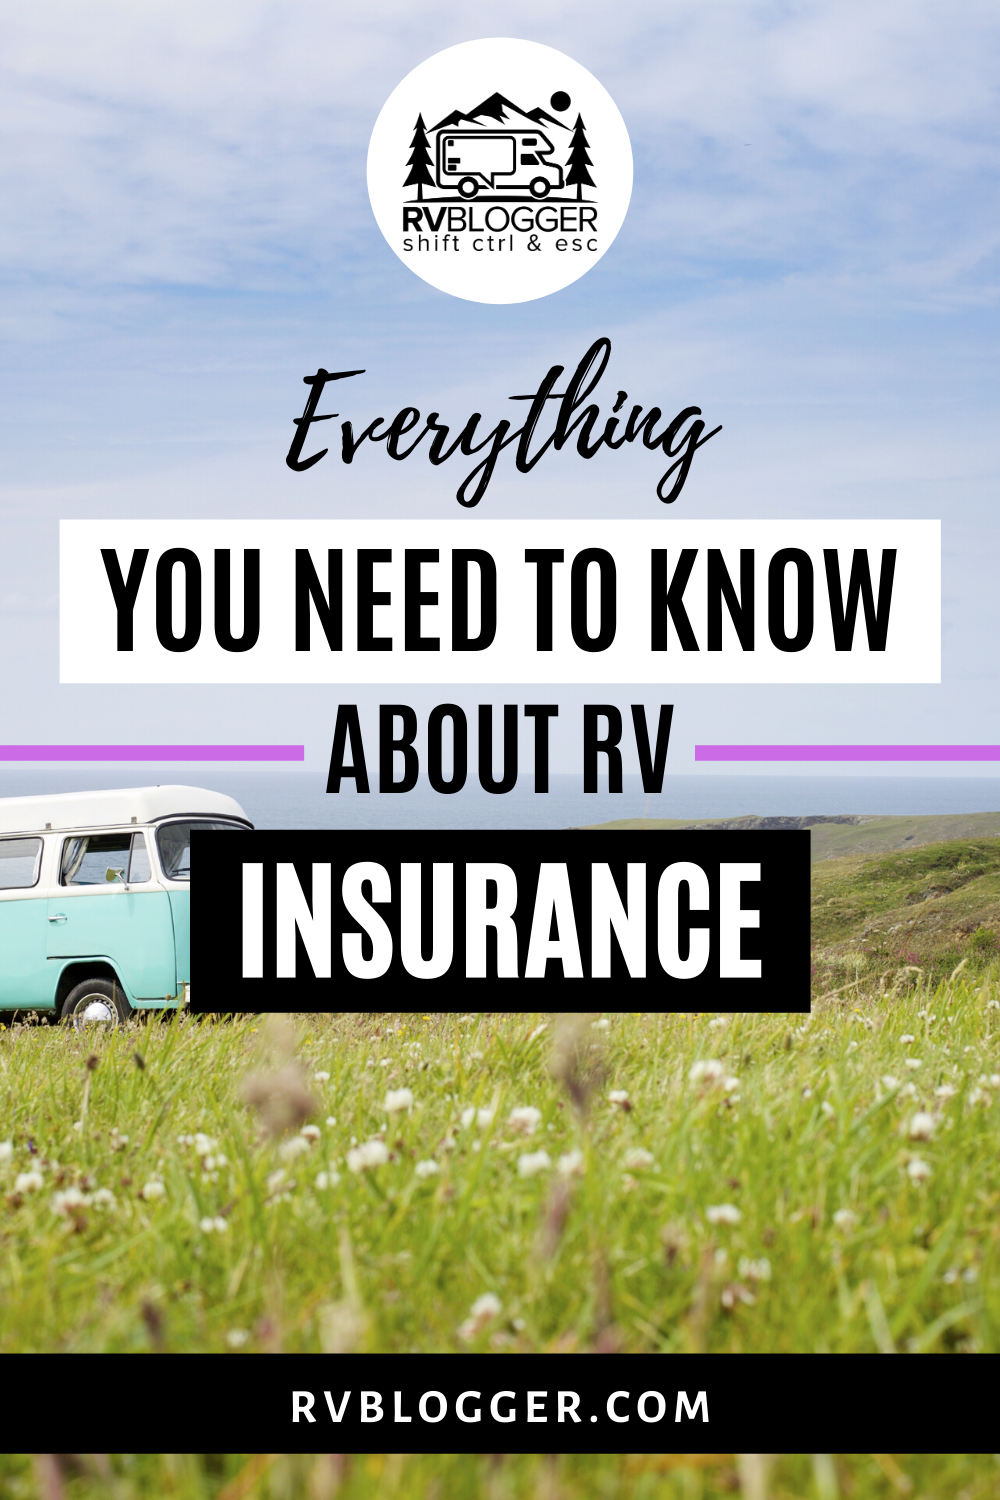 How Much Does Rv Insurance Cost Rvblogger Rv Insurance Cost